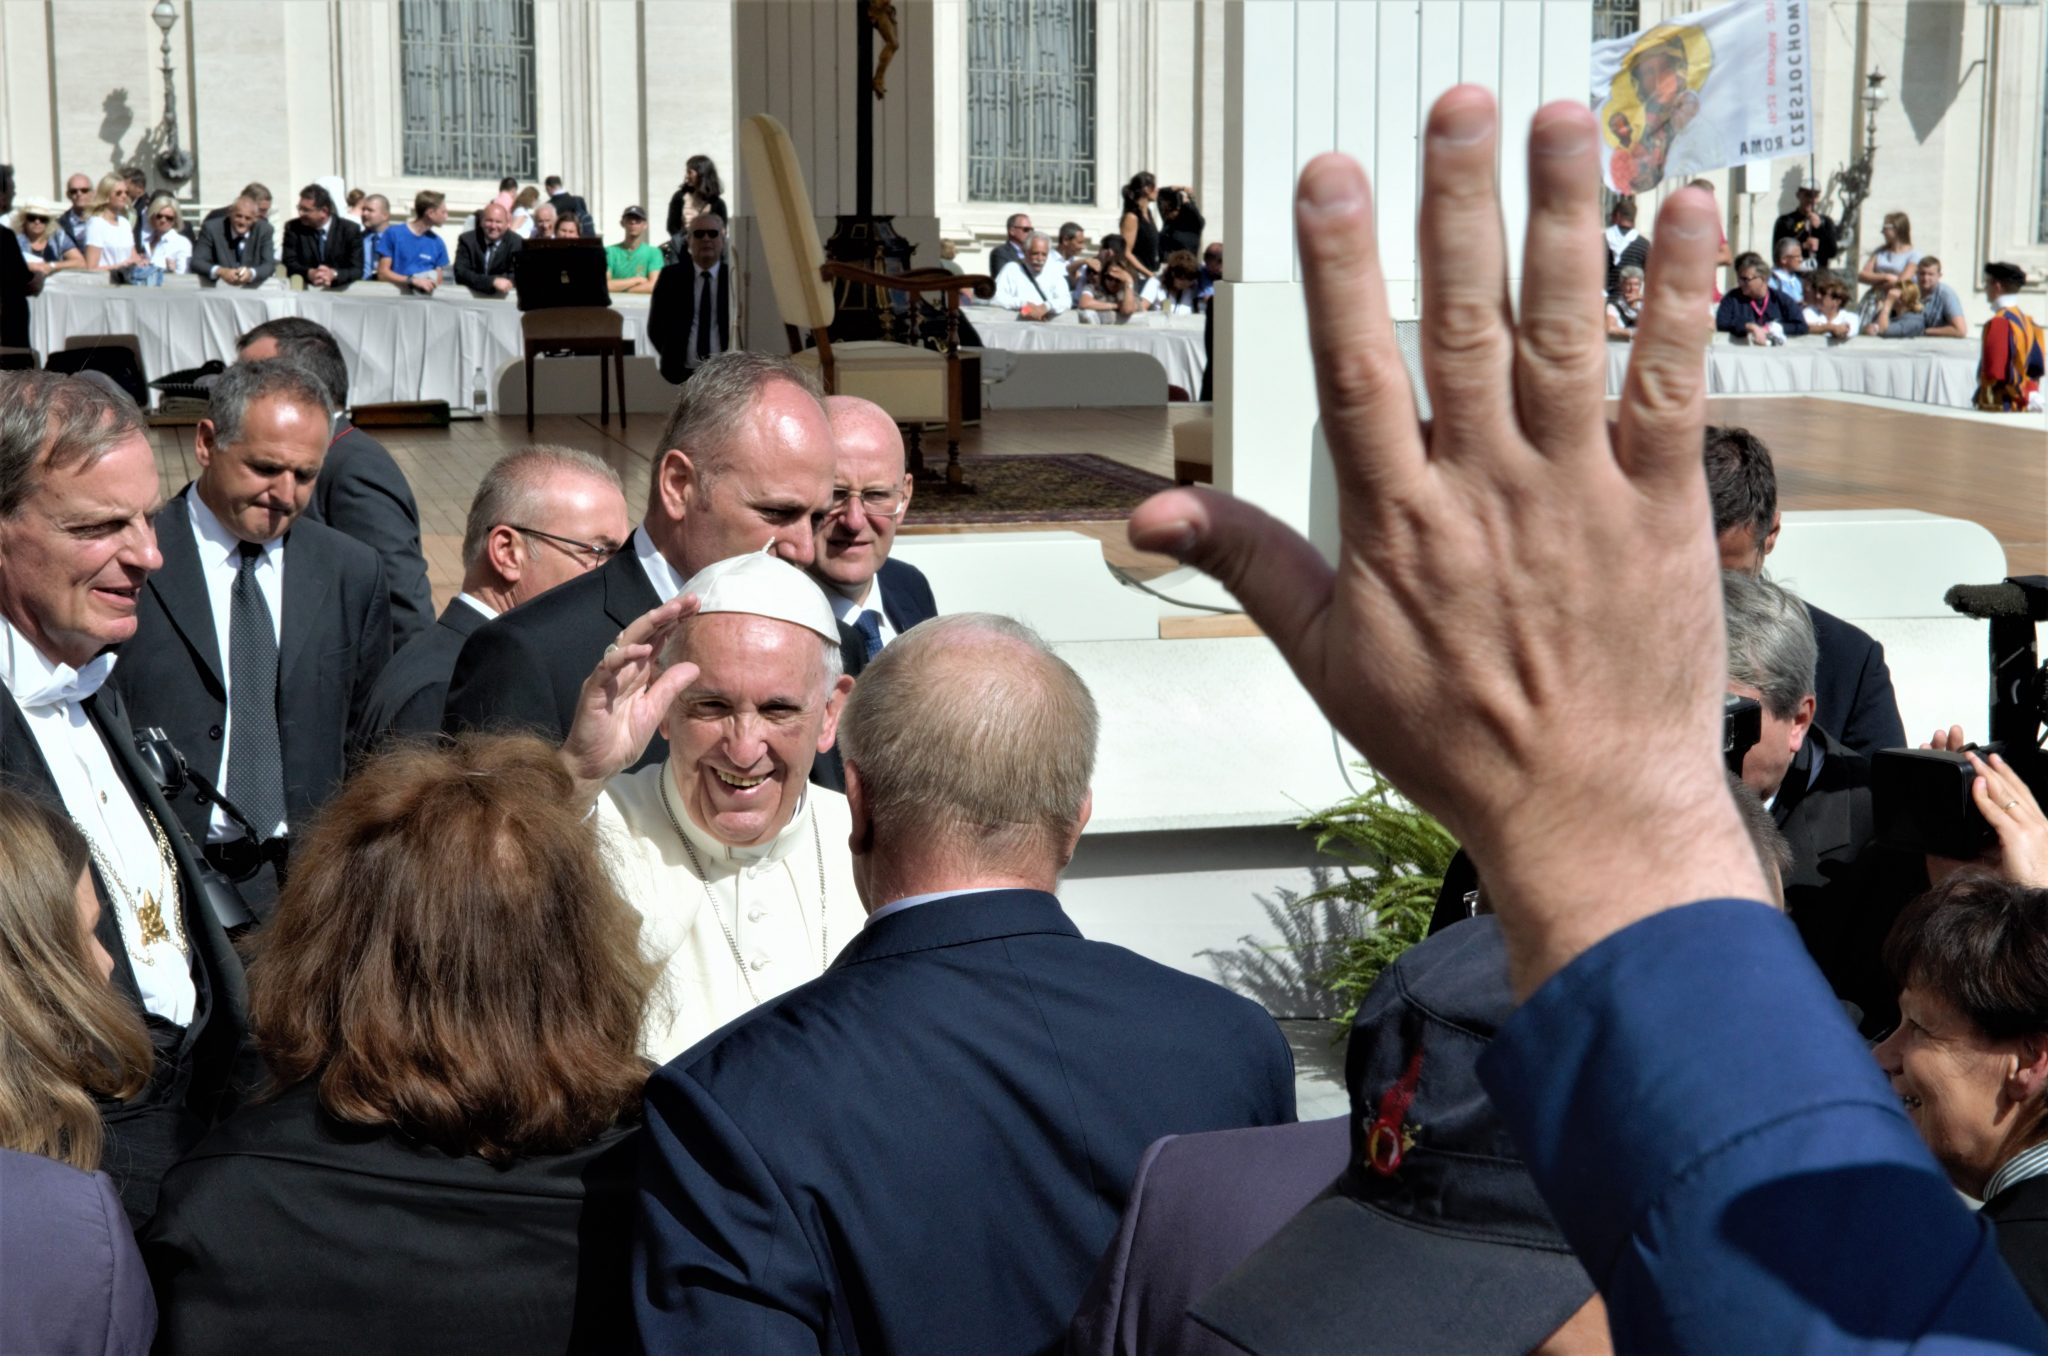 Pope Francis Begins Visit to Ireland by Addressing Grave Scandal of Clerical Sex Abuse